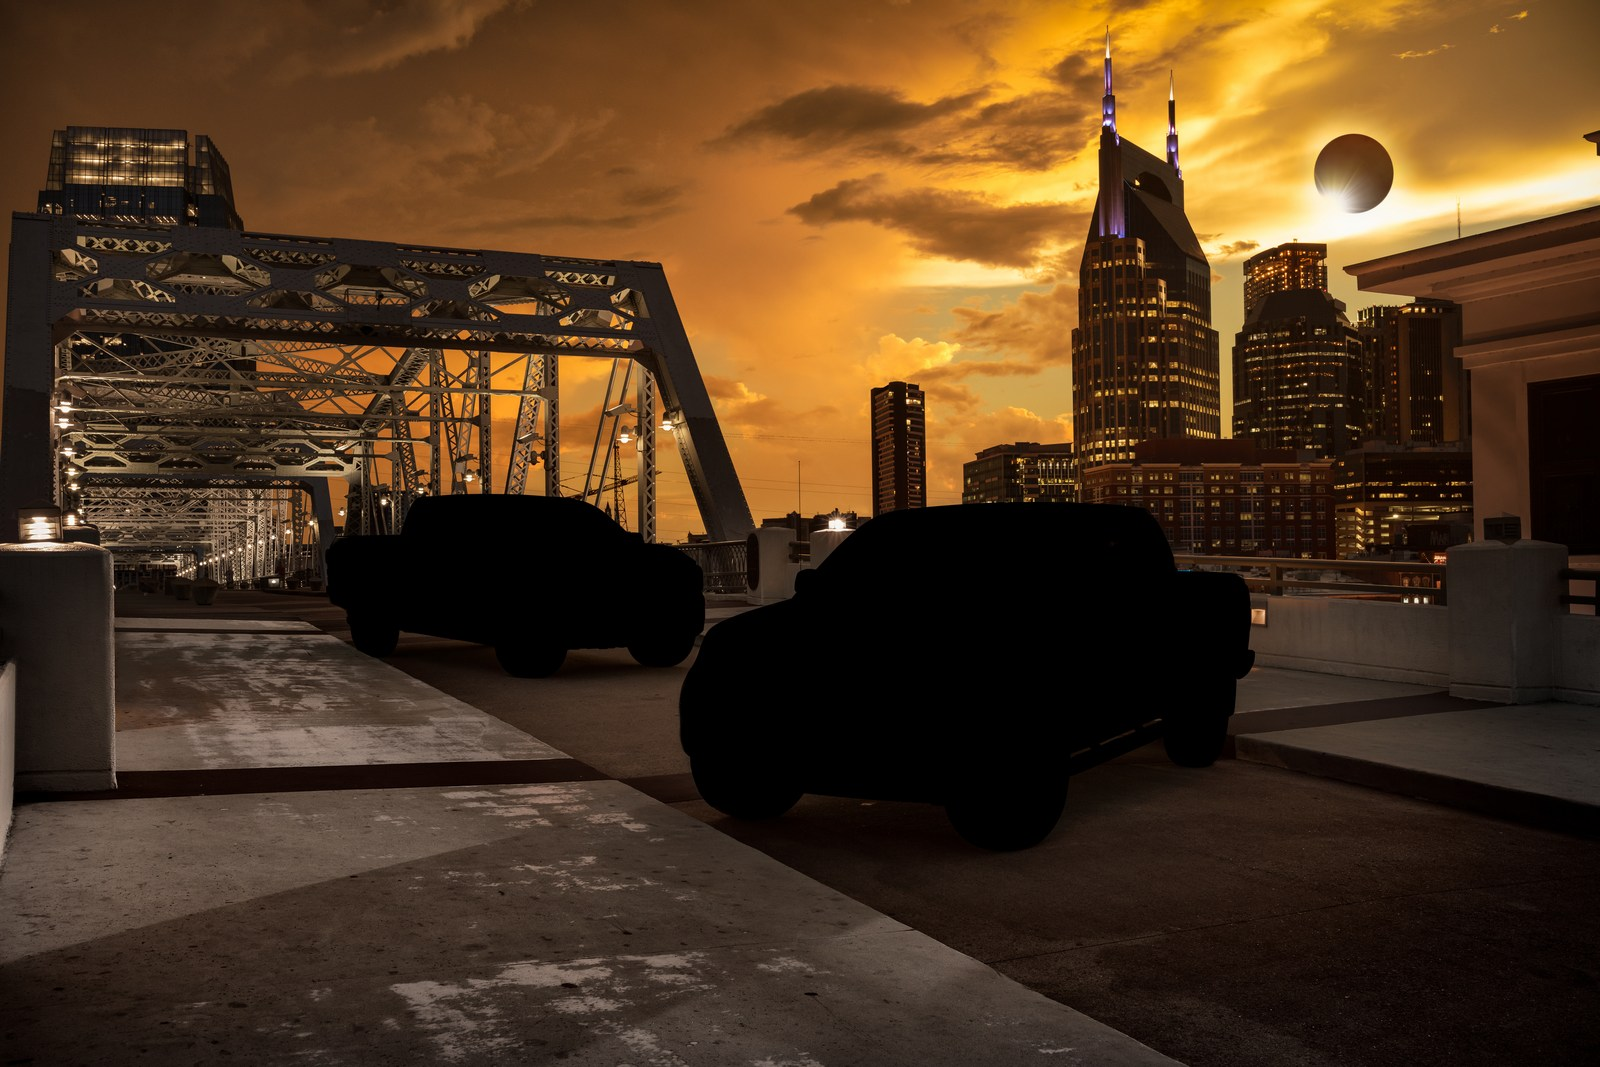 As the solar eclipse darkened the midday sky over NissanÕs U.S. headquarters in Franklin, Tenn., the company rolled out three new additions to its popular and hot selling portfolio of custom Midnight Edition models: TITAN, TITAN XD and Frontier Midnight Editions. NissanÕs Midnight Editions sell on average two times faster than standard models.